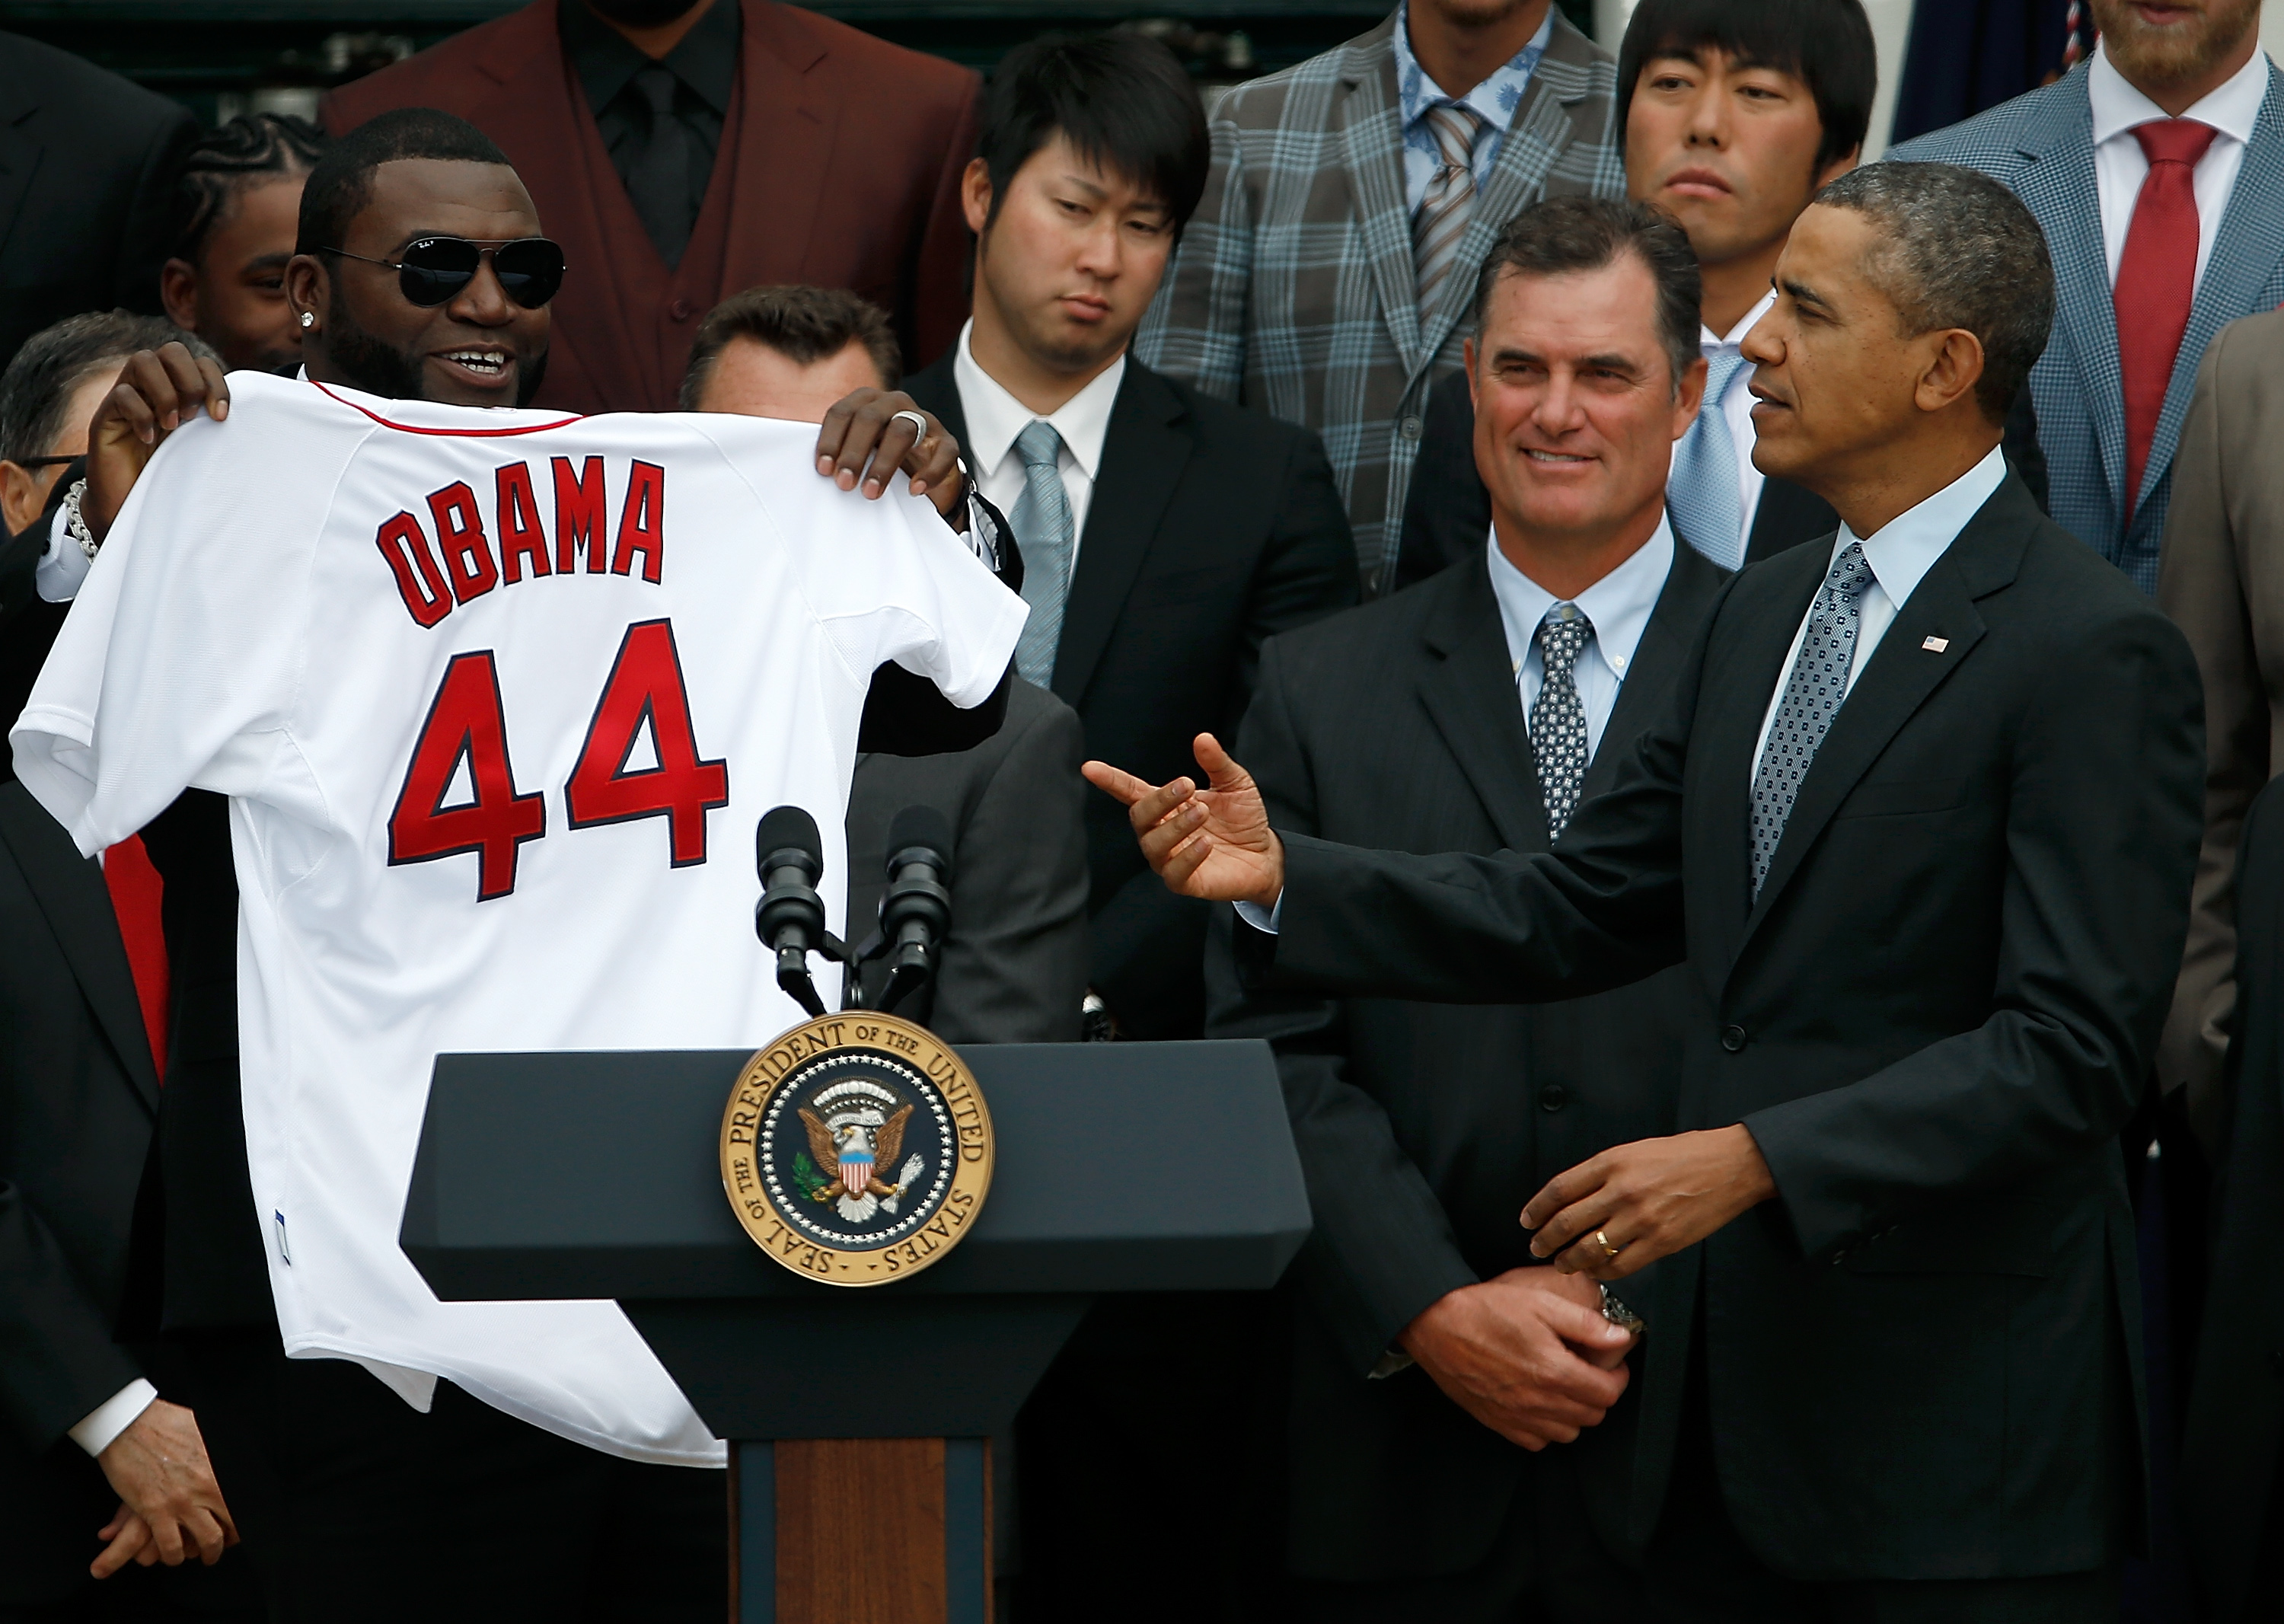 In this file photo, former Boston Red Sox designated hitter David Ortiz holds a Red Sox jersey presented to former US President Barack Obama during a ceremony at the White House on April 1, 2014 in Washington, DC.